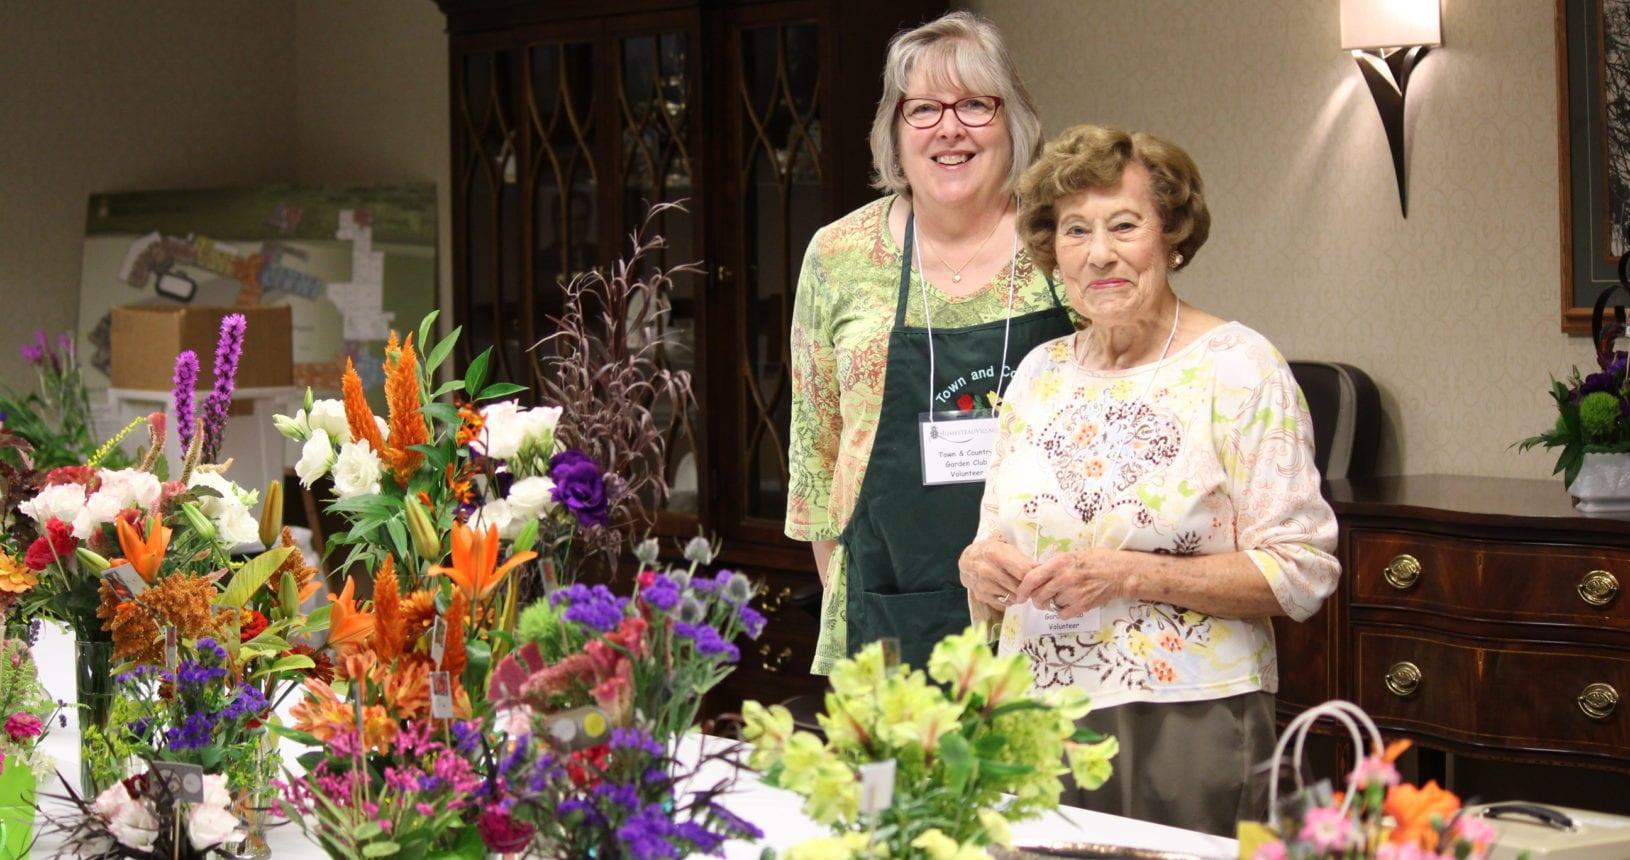 Ladies showing flower arrangements at the Homestead Day Plant Sale